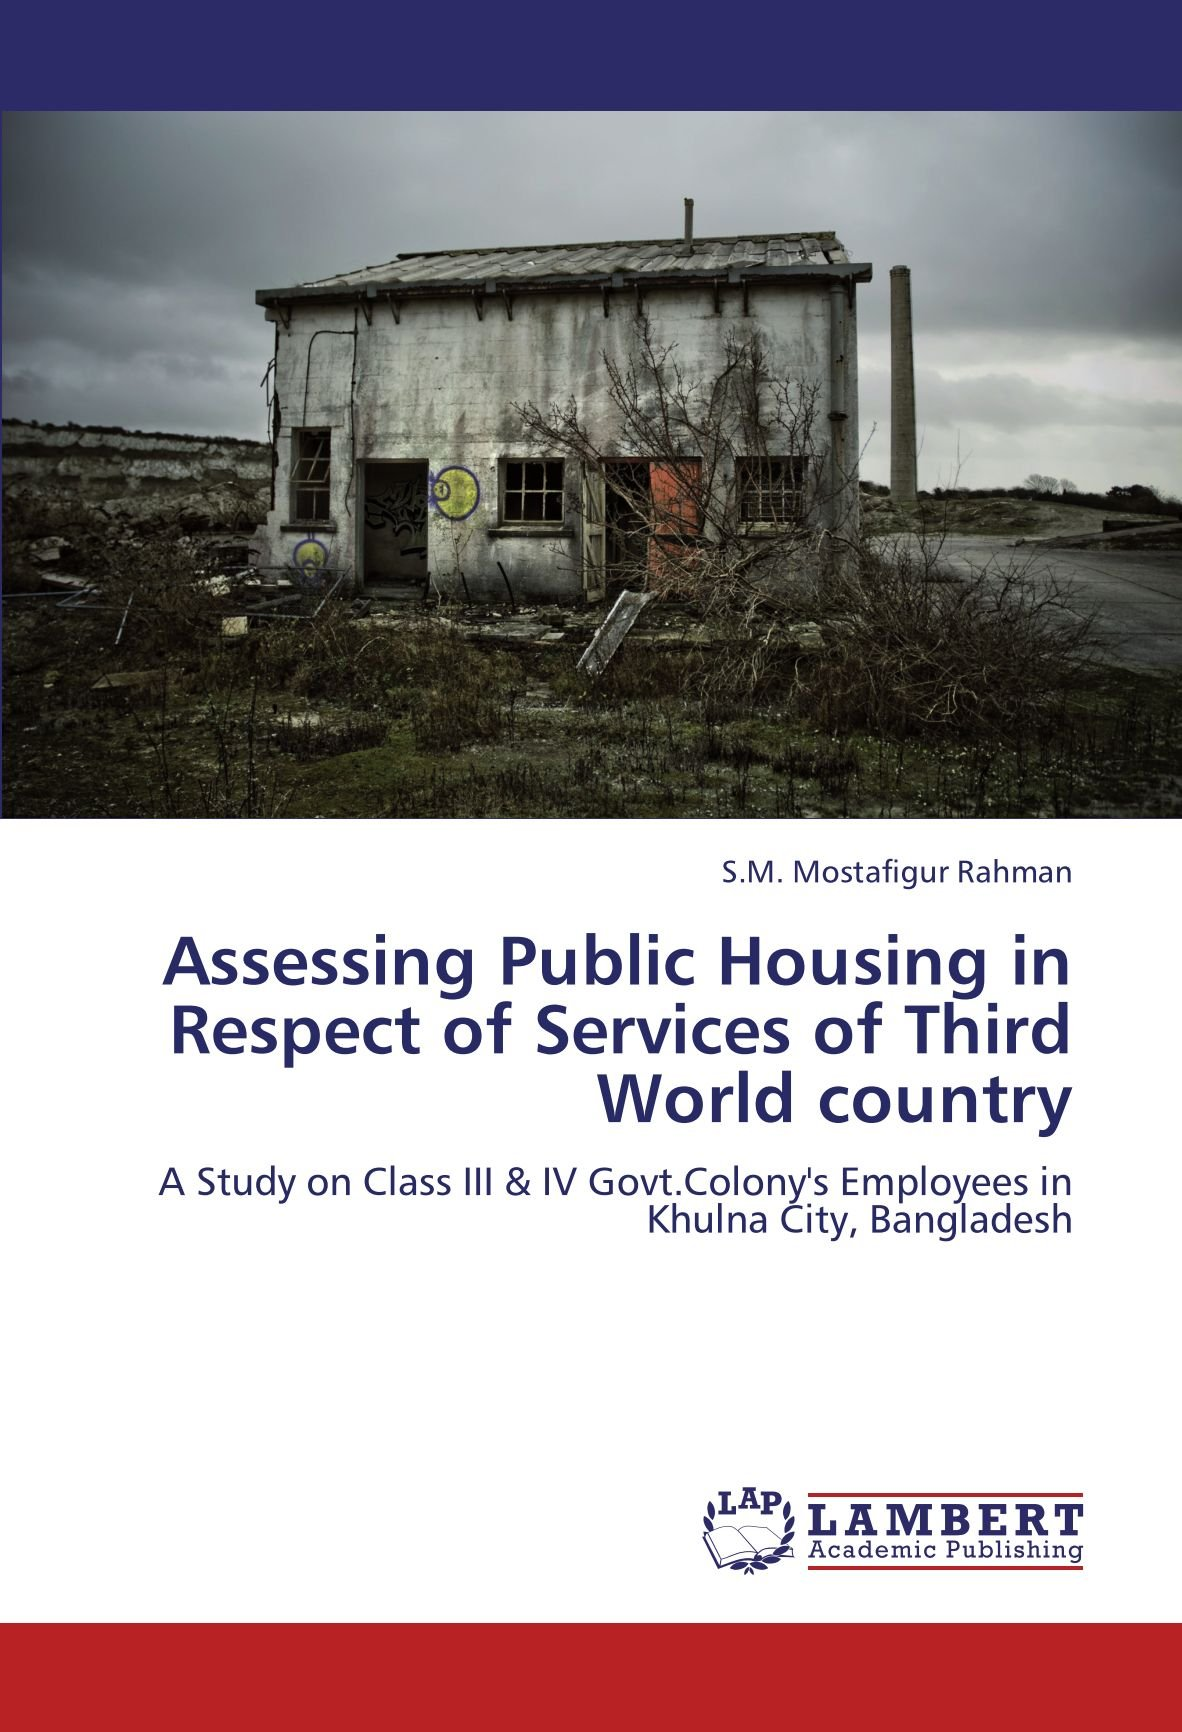 Download Assessing Public Housing in Respect of Services of Third World country: A Study on Class III & IV Govt.Colony's  Employees in Khulna City, Bangladesh PDF